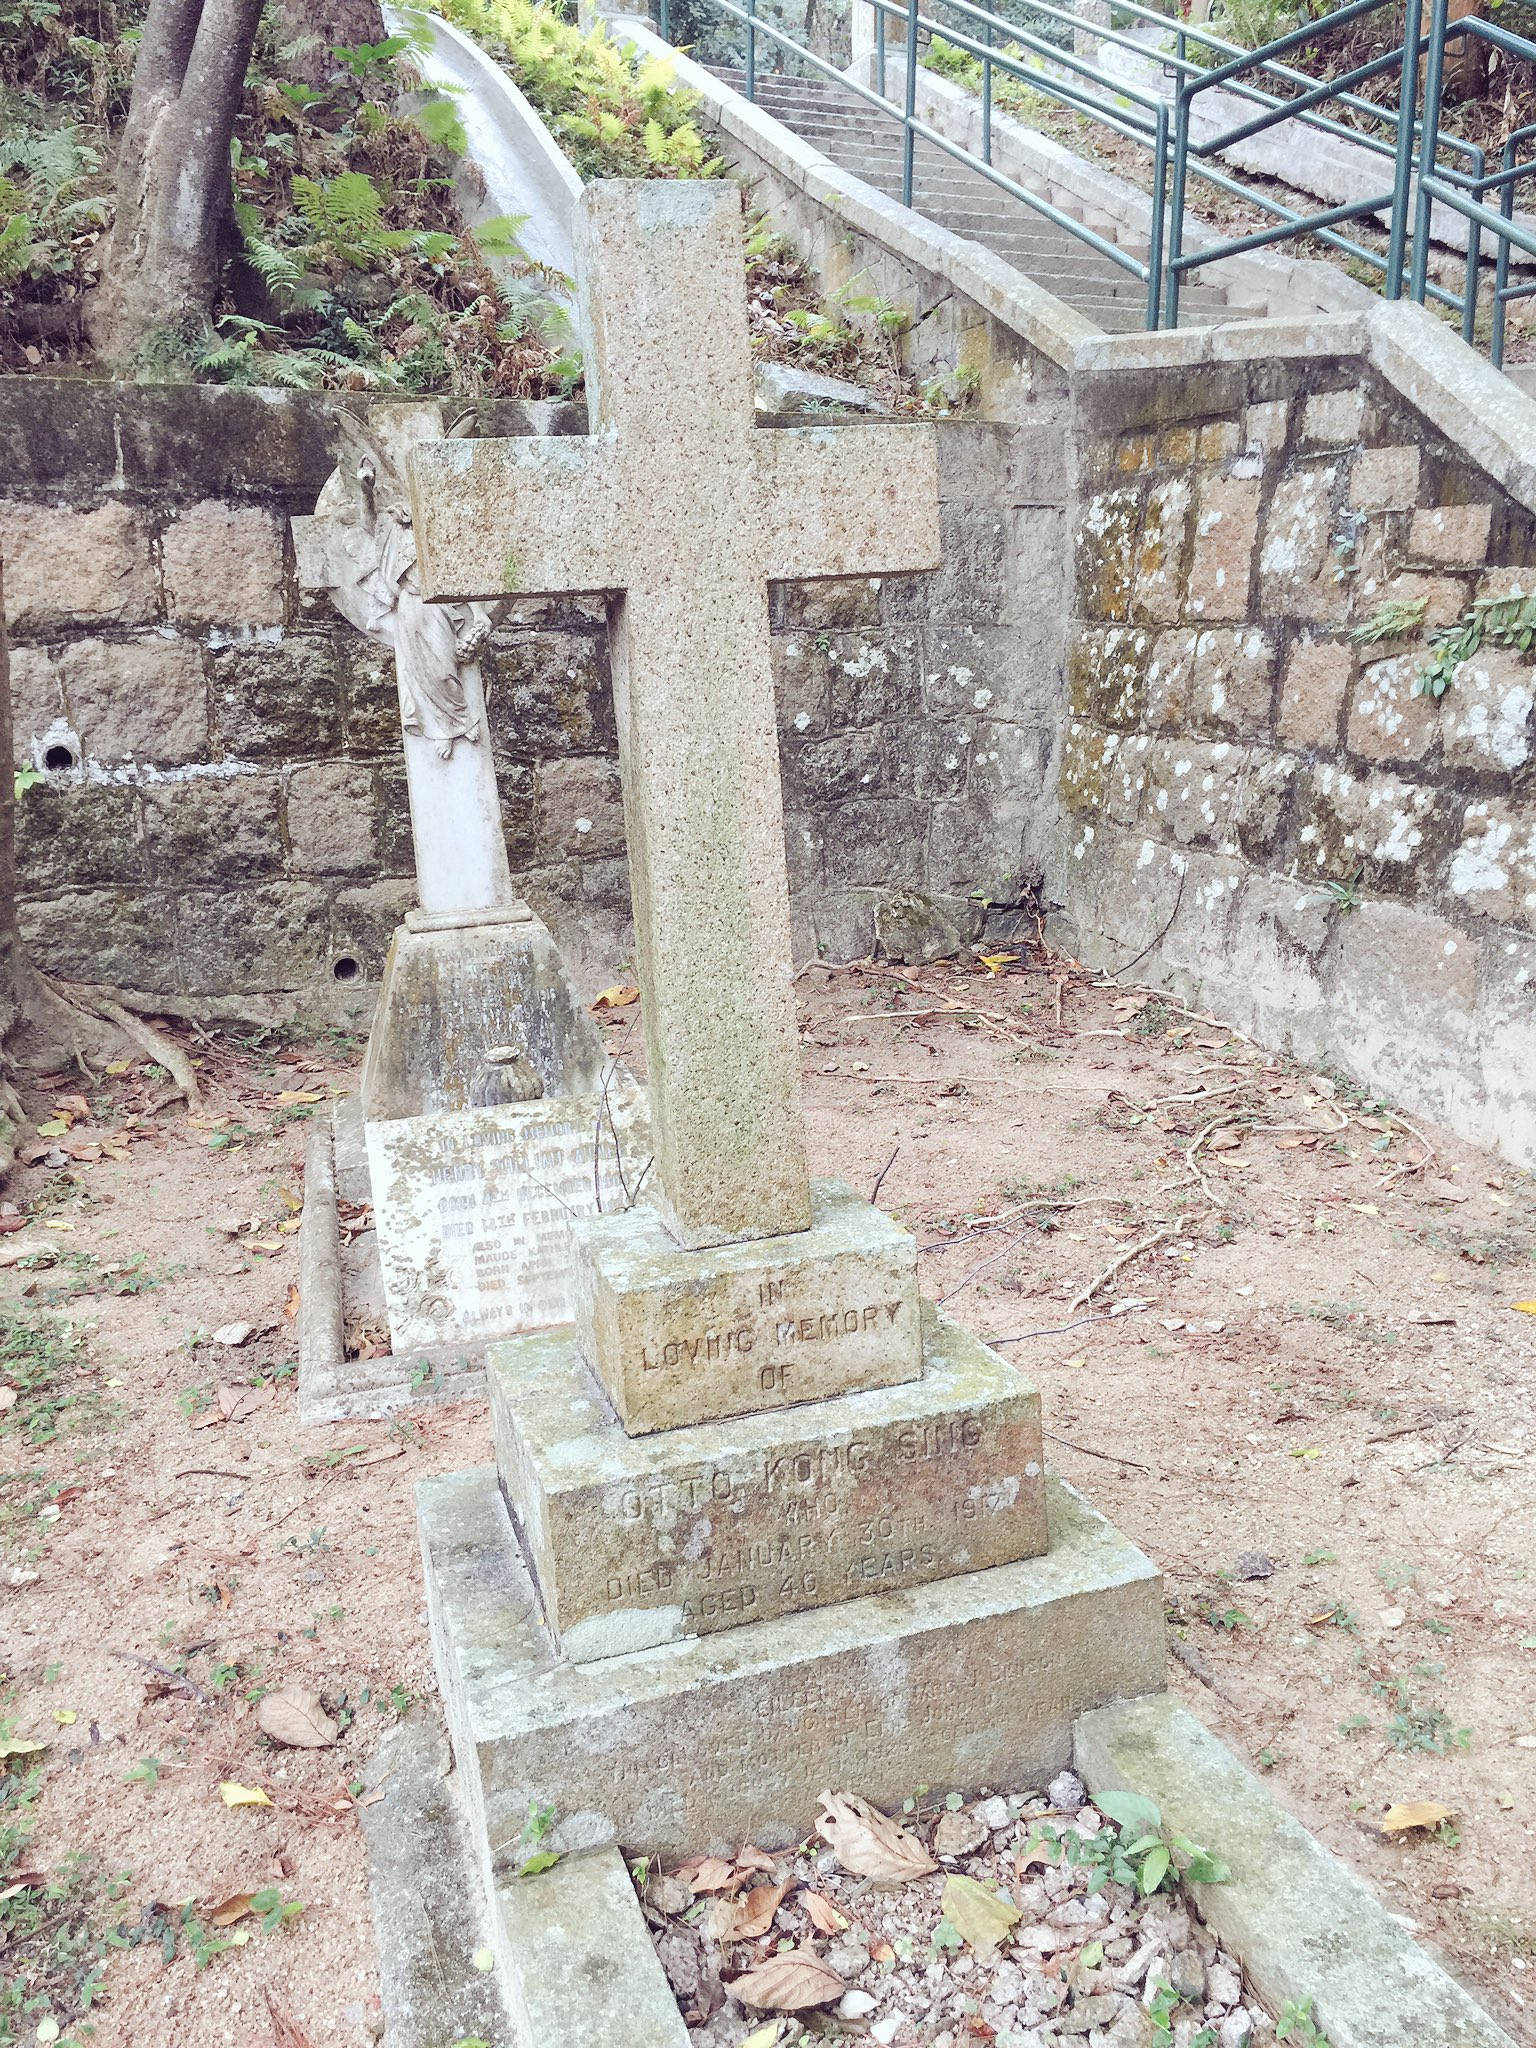 Grave of NSW-born Otto Kong Sing in the HK Cemetery at Happy Valley. https://t.co/tB56kYnptc